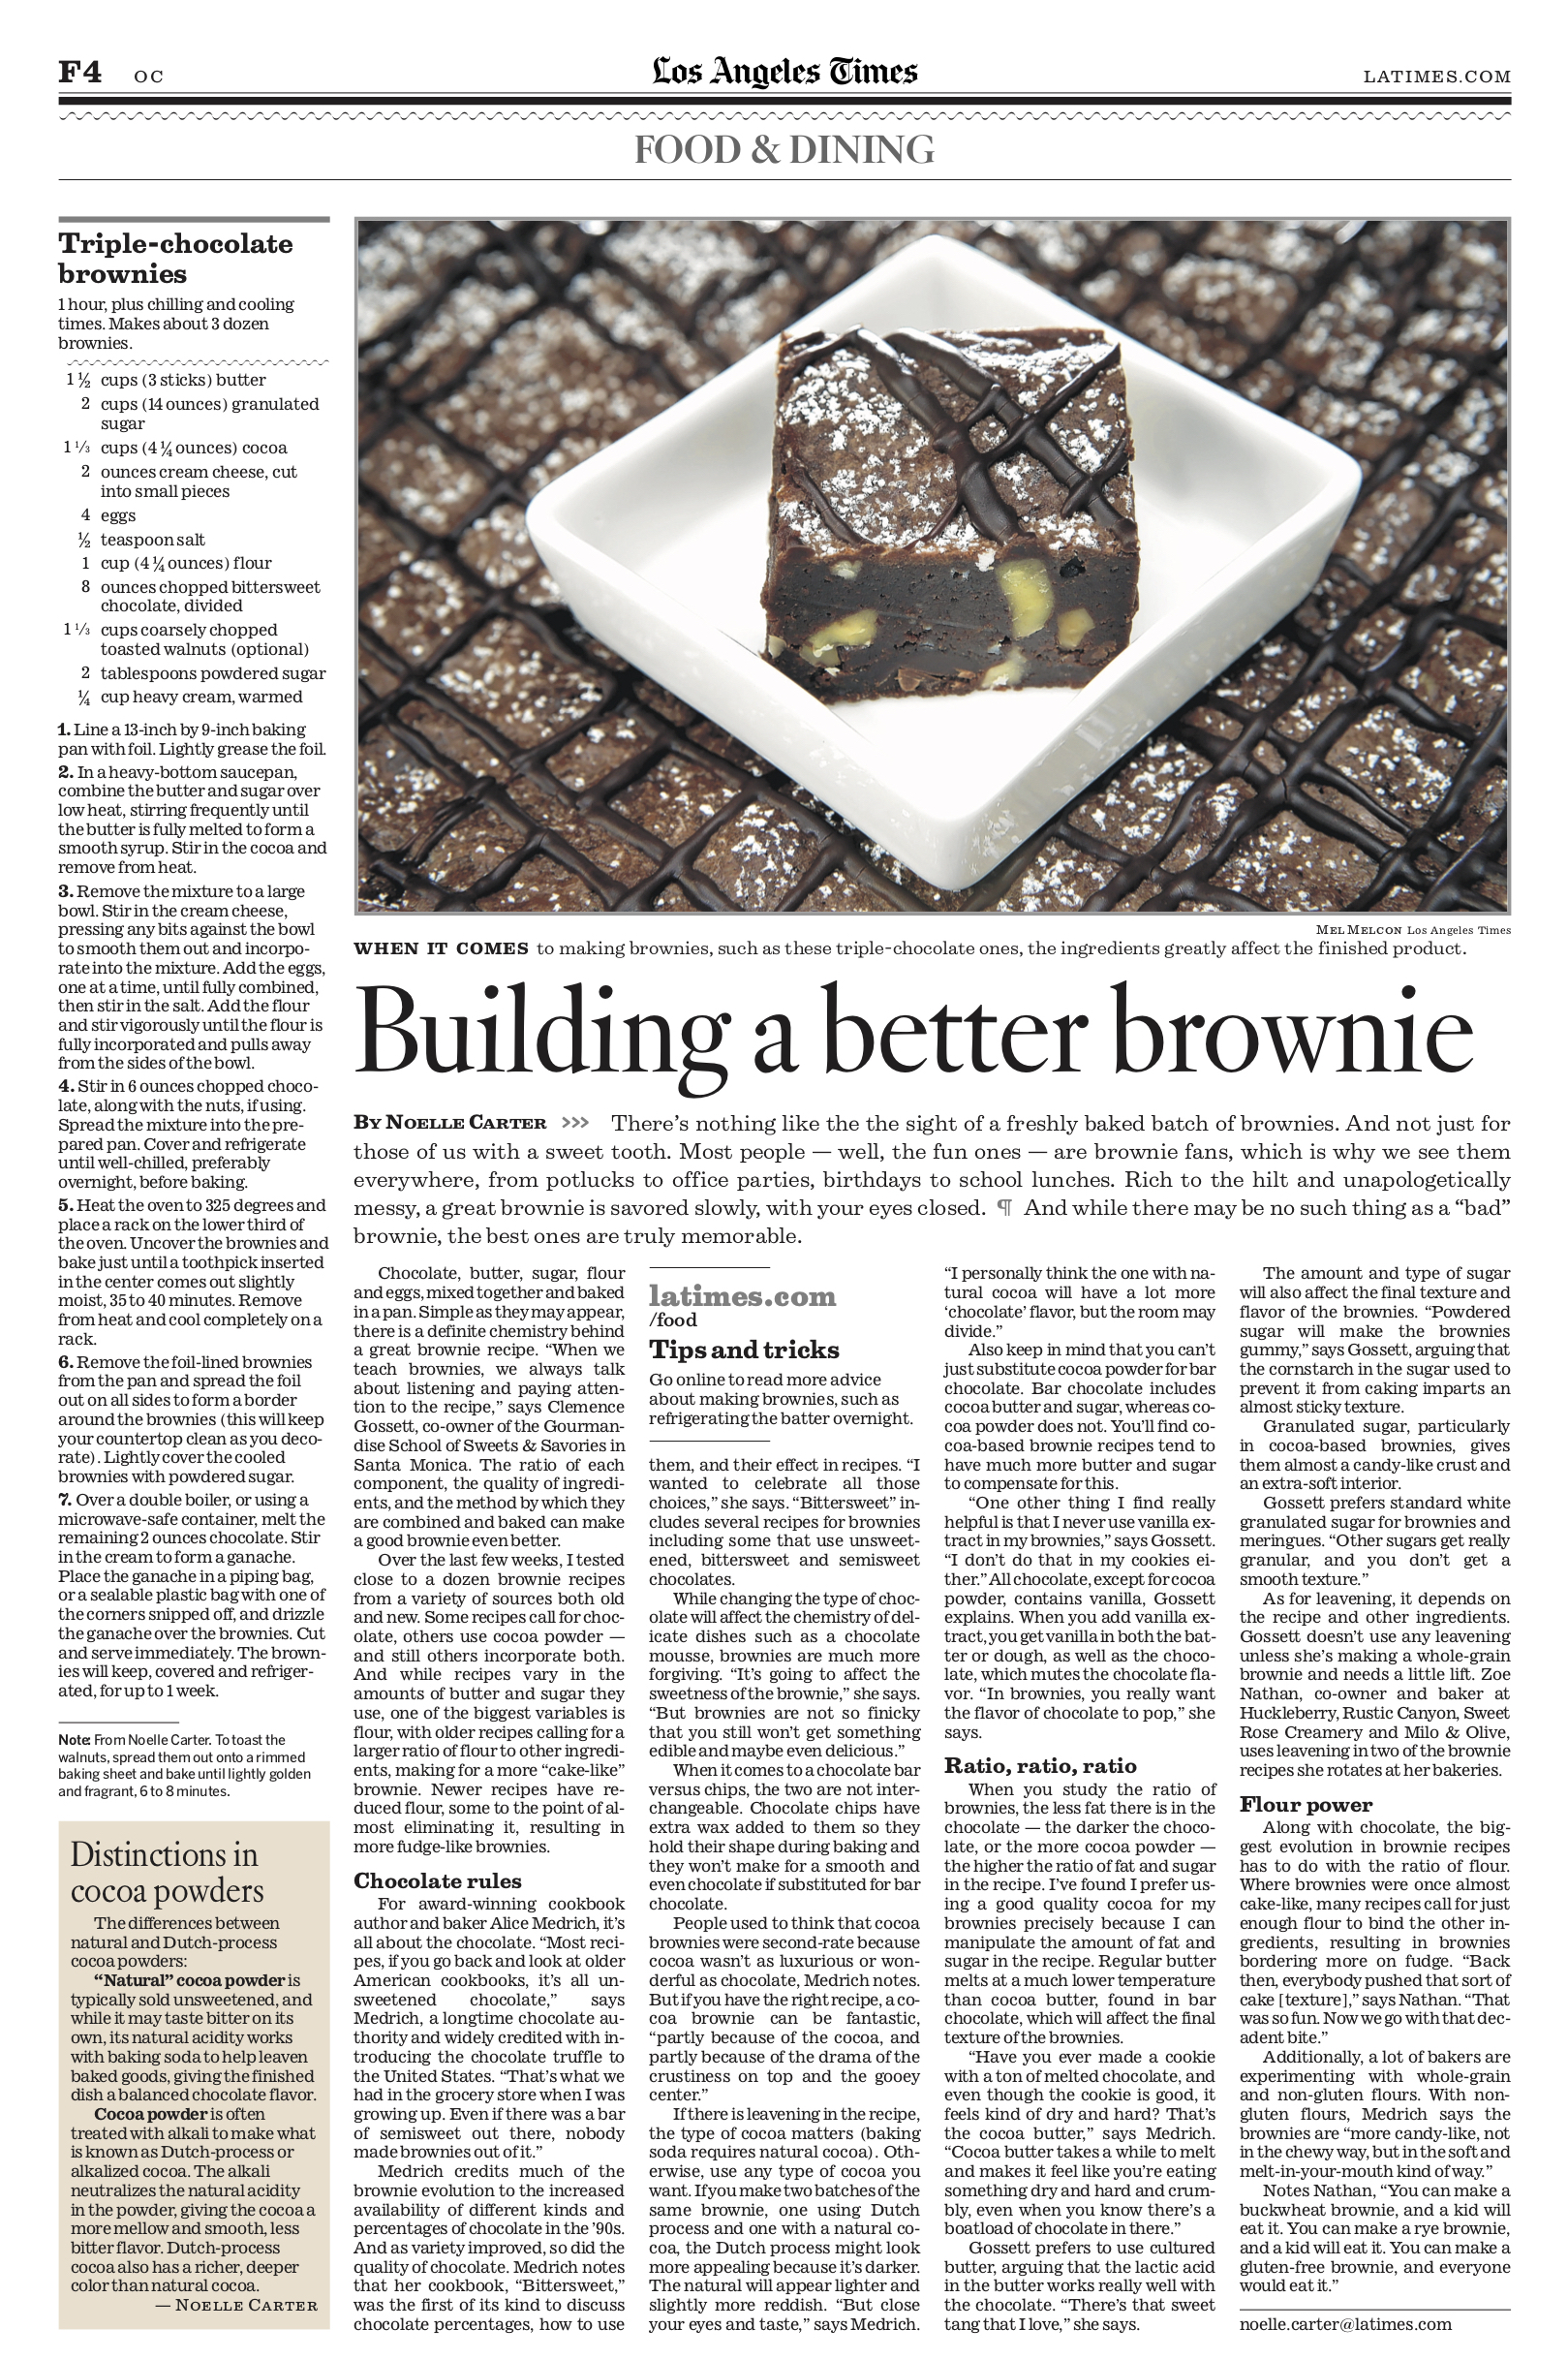 """BUILDING A BETTER BROWNIE - There's nothing like the the sight of a freshly baked batch of brownies. And not just for those of us with a sweet tooth. Most people — well, the fun ones — are brownie fans, which is why we see them everywhere, from potlucks to office parties, birthdays to school lunches. Rich to the hilt and unapologetically messy, a great brownie is savored slowly, with your eyes closed.And while there may be no such thing as a """"bad"""" brownie, the best ones are truly memorable.Chocolate, butter, sugar, flour and eggs, mixed together and baked in a pan. Simple as they may appear, there is a definite chemistry behind a great brownie recipe. """"When we teach brownies, we always talk about listening and paying attention to the recipe,"""" says Clemence Gossett, co-owner of the Gourmandise School of Sweets & Savories in Santa Monica. The ratio of each component, the quality of ingredients, and the method by which they are combined and baked can make a good brownie even better.Over the last few weeks, I tested close to a dozen brownie recipes from a variety of sources both old and new…."""